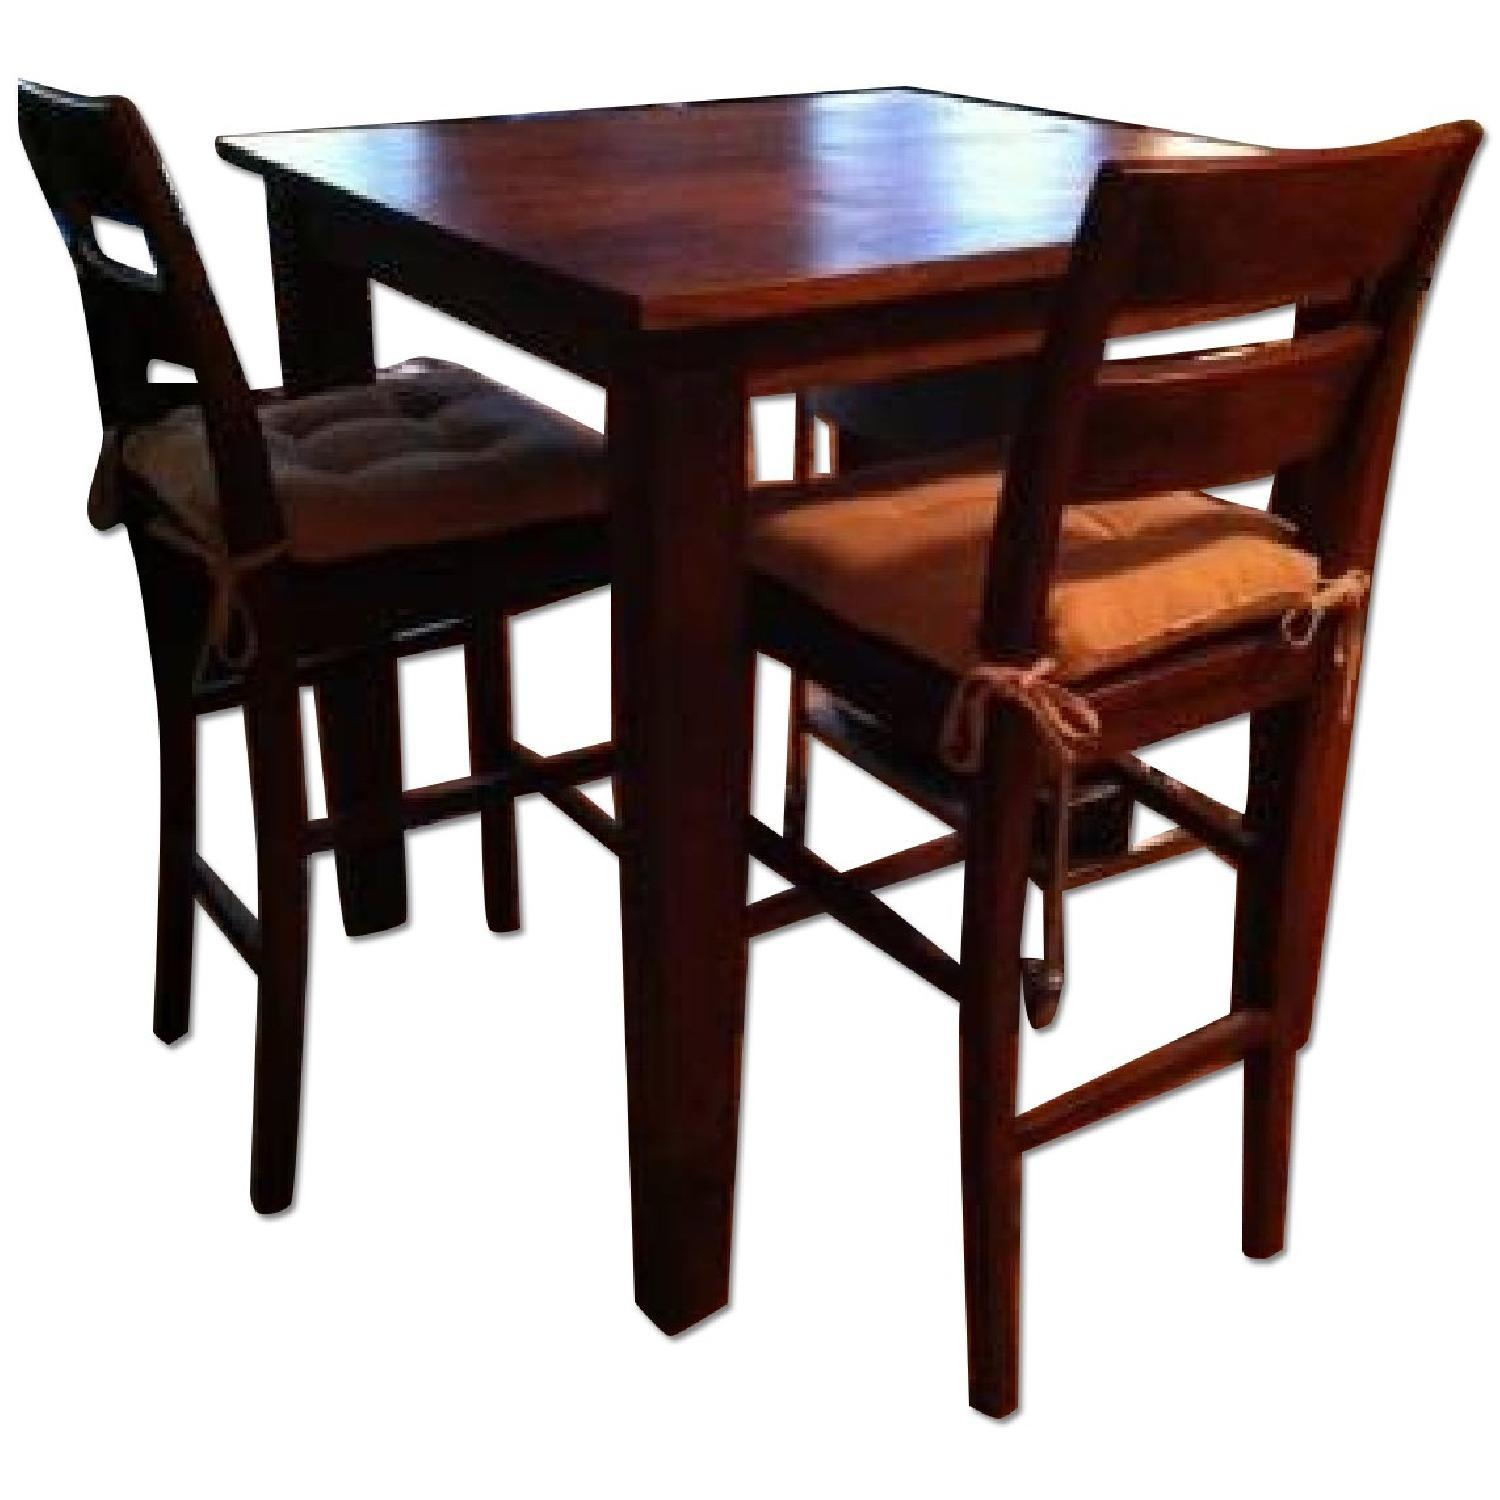 Crate Barrel Basque High Dining Table W 2 Stools Aptdeco